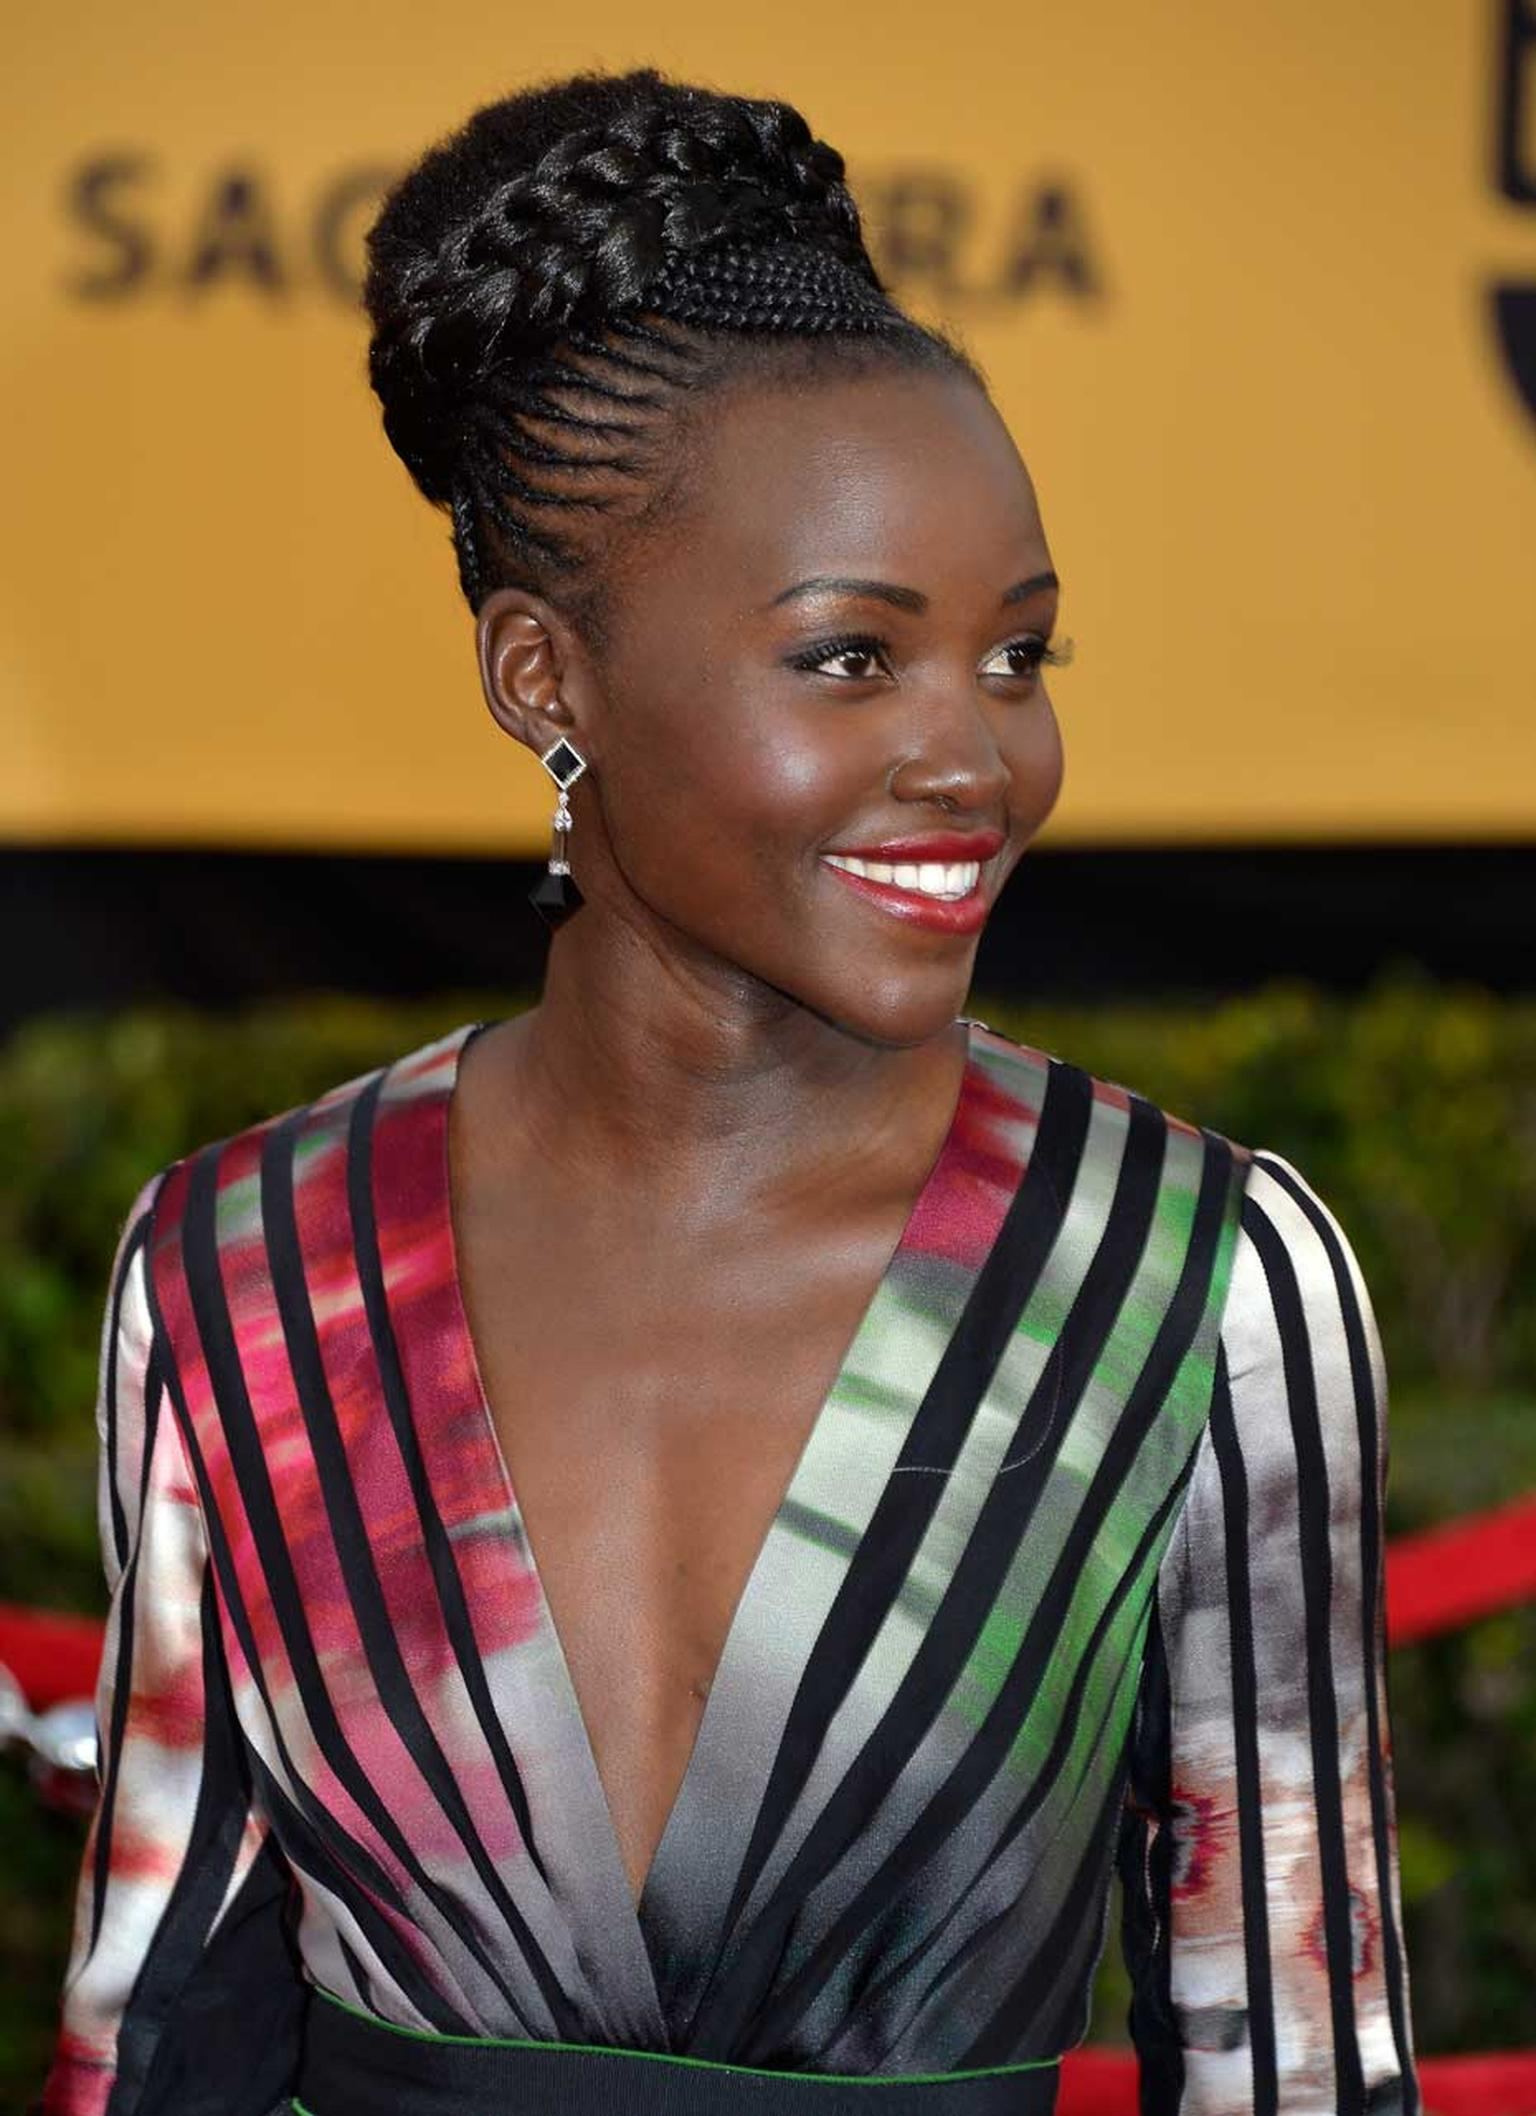 Lupita Nyong'o, pictured at the 2015 SAG Awards in LA, wearing Fred Leighton jewelry, including these stunning Pyramid pendant earrings in black jade, rock crystal and diamond.